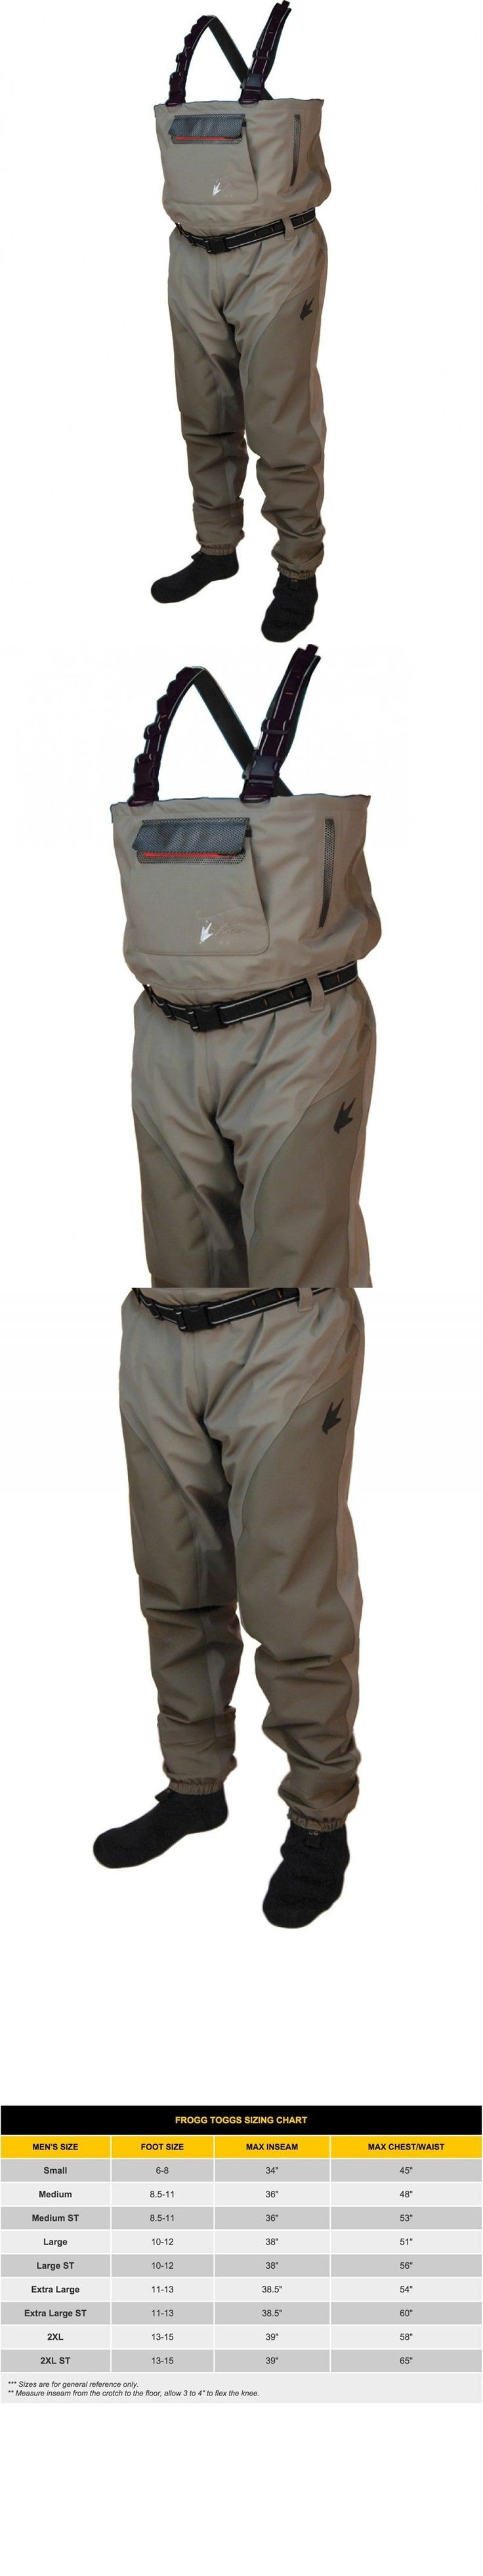 Other Fishing Clothing and Accs 27415: Frogg Toggs Anura Ii Reinforced Nylon Breathable Stockingfoot Wader Fast Ship!!! -> BUY IT NOW ONLY: $155 on eBay!